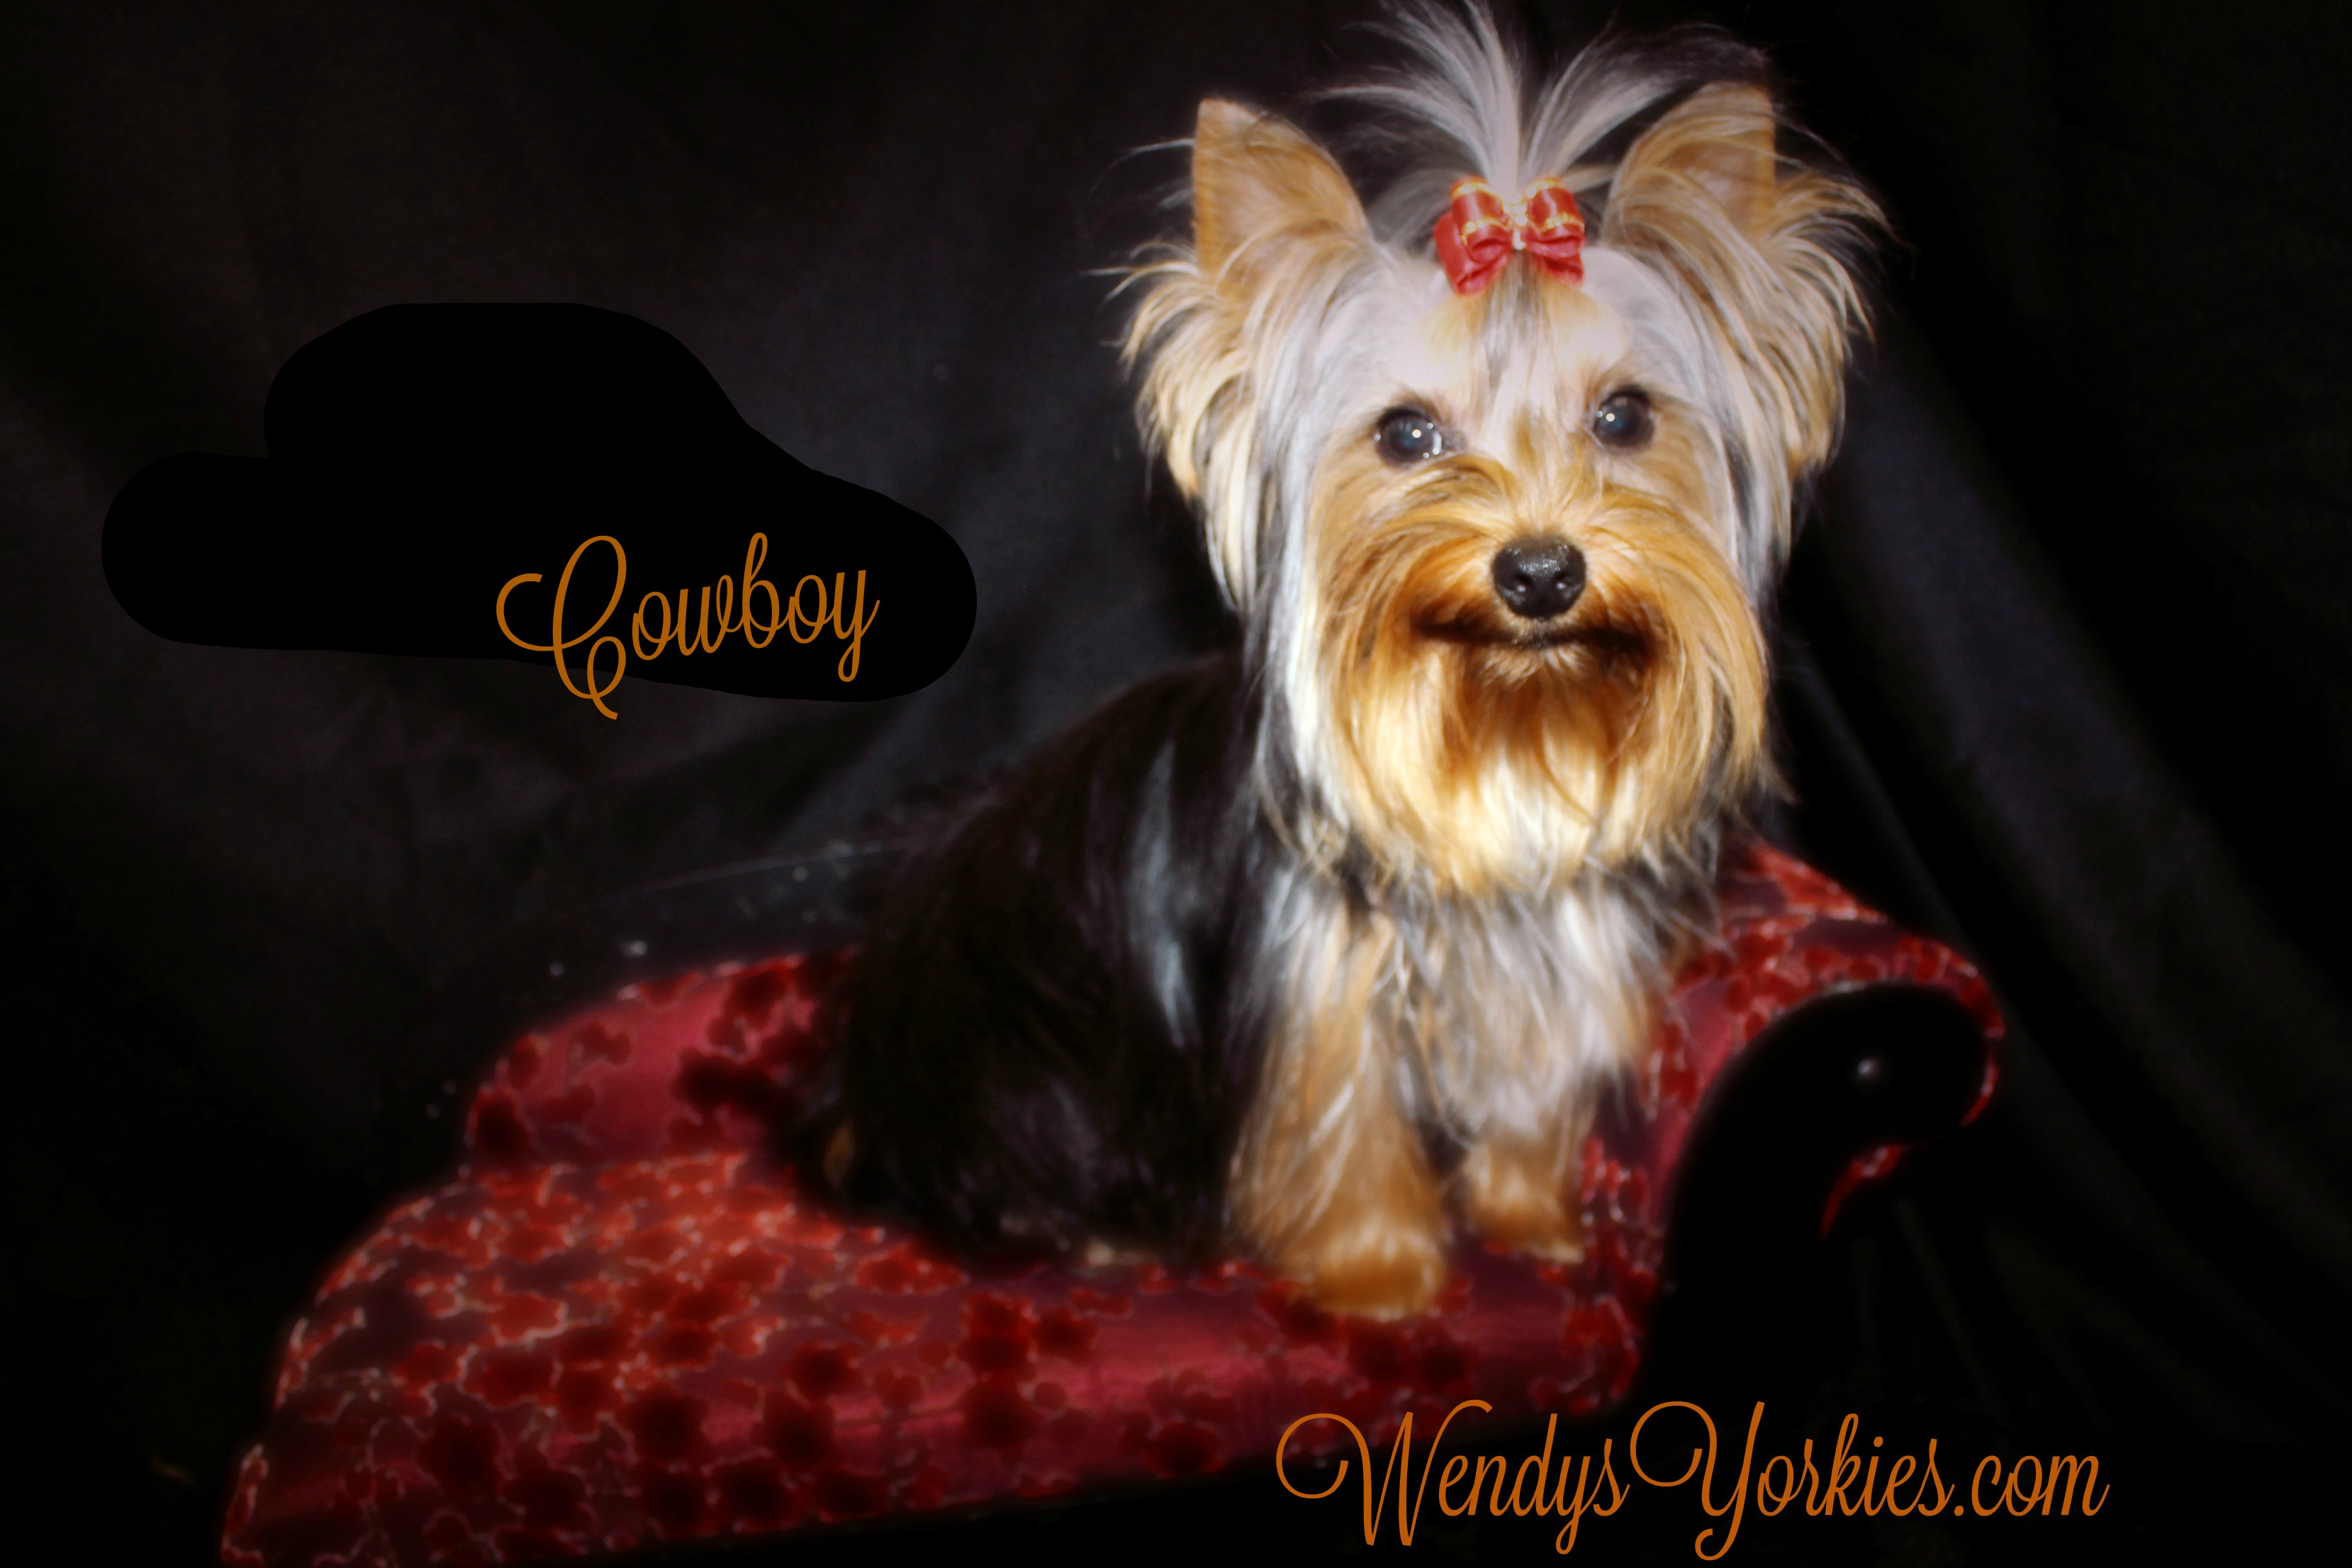 Yorkie puppy Breeder in Texas, Cowboy, WendysYorkies.com, Cutest Yorkies for sale, Cowboy Yorkie